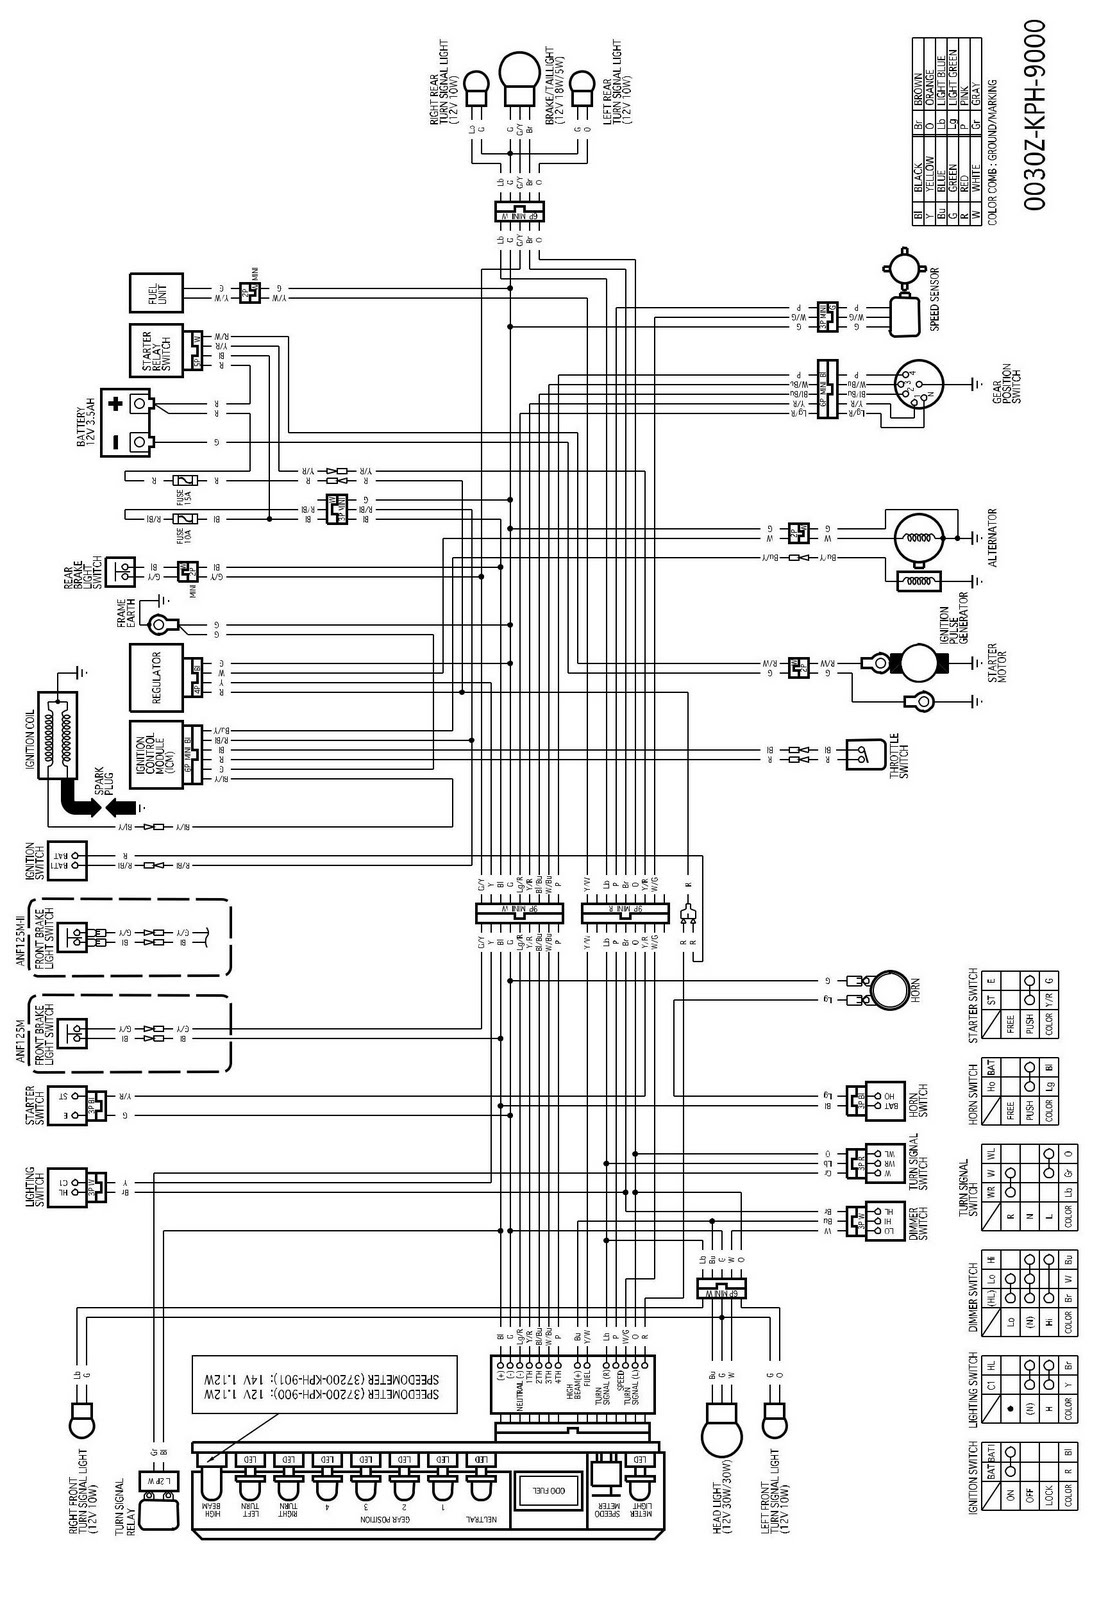 yamaha grizzly 700 fi wiring diagram